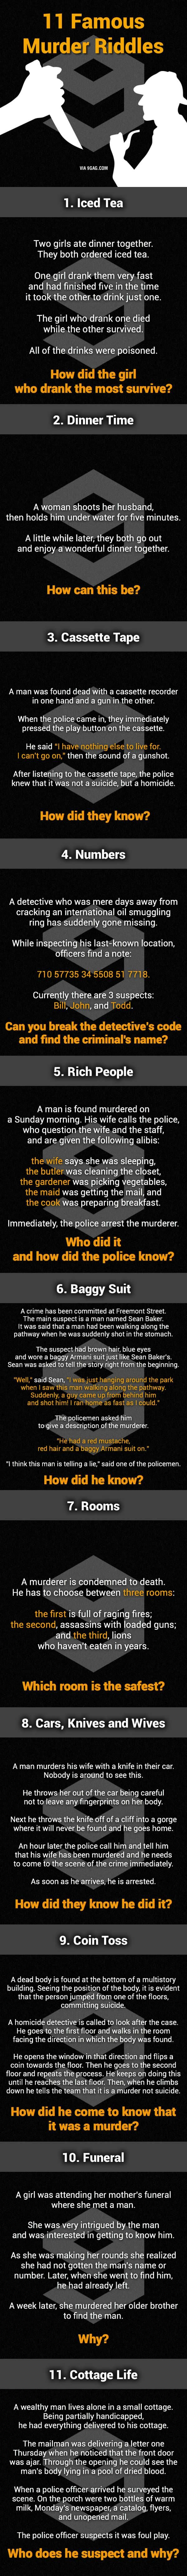 "11 Murder Mystery Riddles. Can You Solve Them All? 1. The poison was in the ice. 2. She shot her husband with a camera and then developed the photo. 3. If the man shot himself while he was recording, how did he rewind the cassette tape? 4. Bill is the suspect, if read upside down the numbers read ""Bill is boss. He sells oil."" 5. There is no mail on Sundays. 6. How can the murderer shoot him in the stomach if he came up behind the man? 7. The room with the lions because they would have now…"